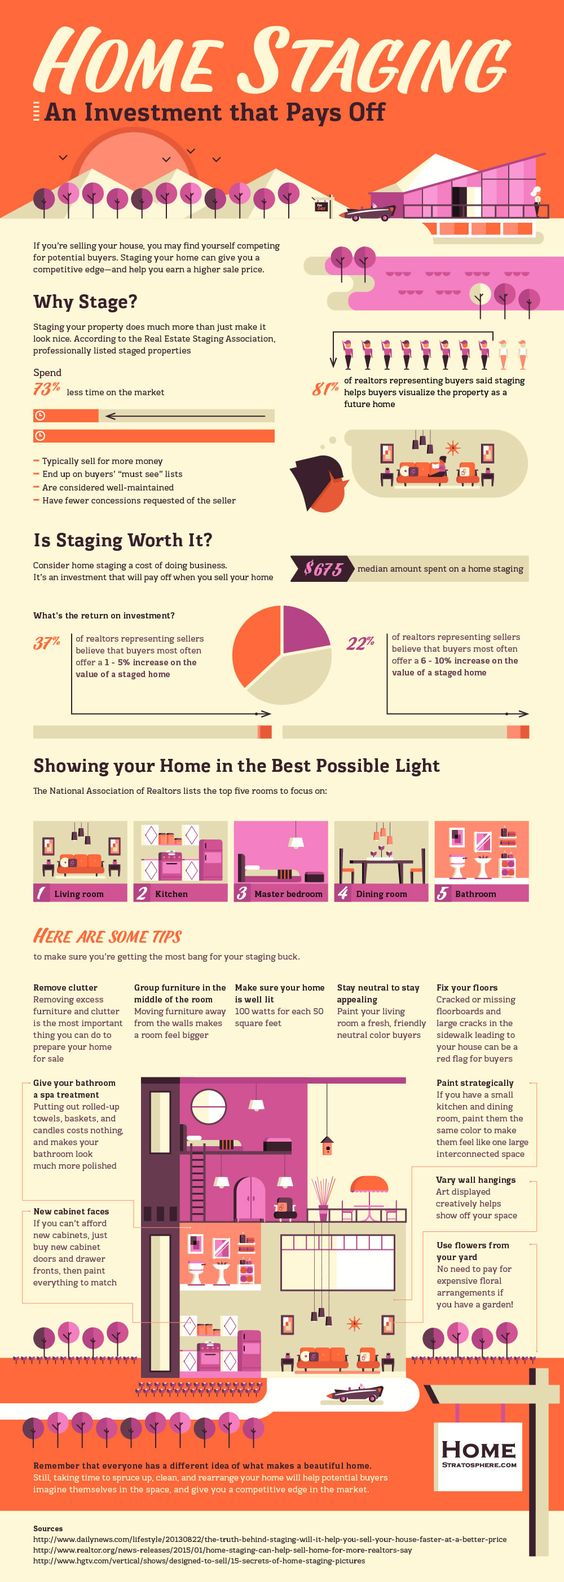 Home Staging Benefits and Tips